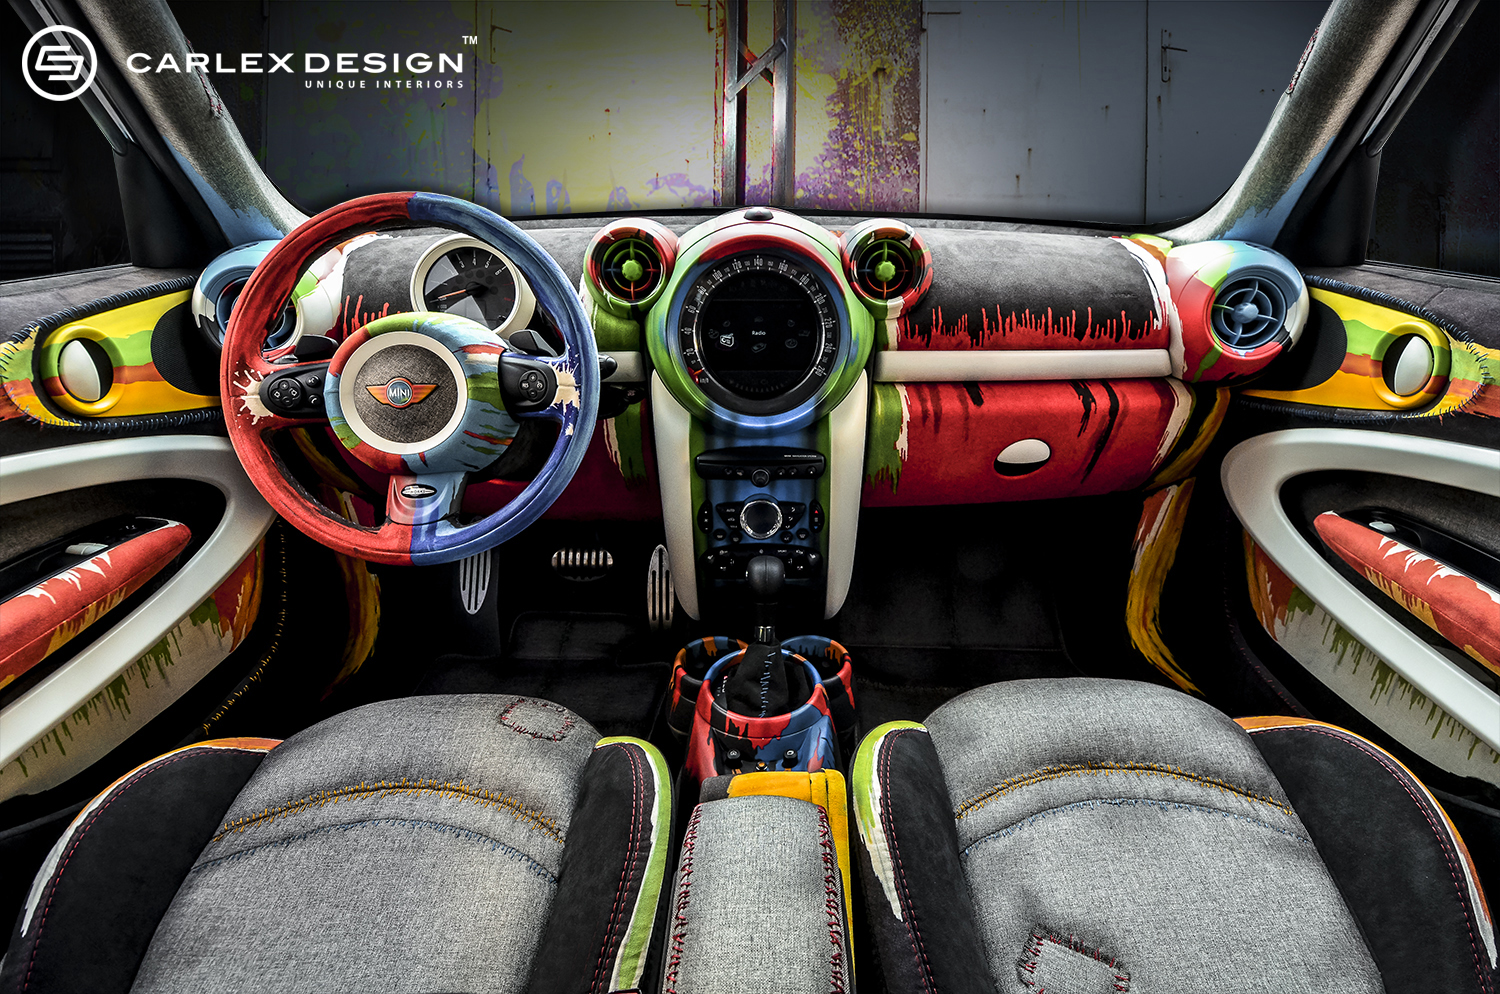 carlex design finally reveals the mini paceman painter